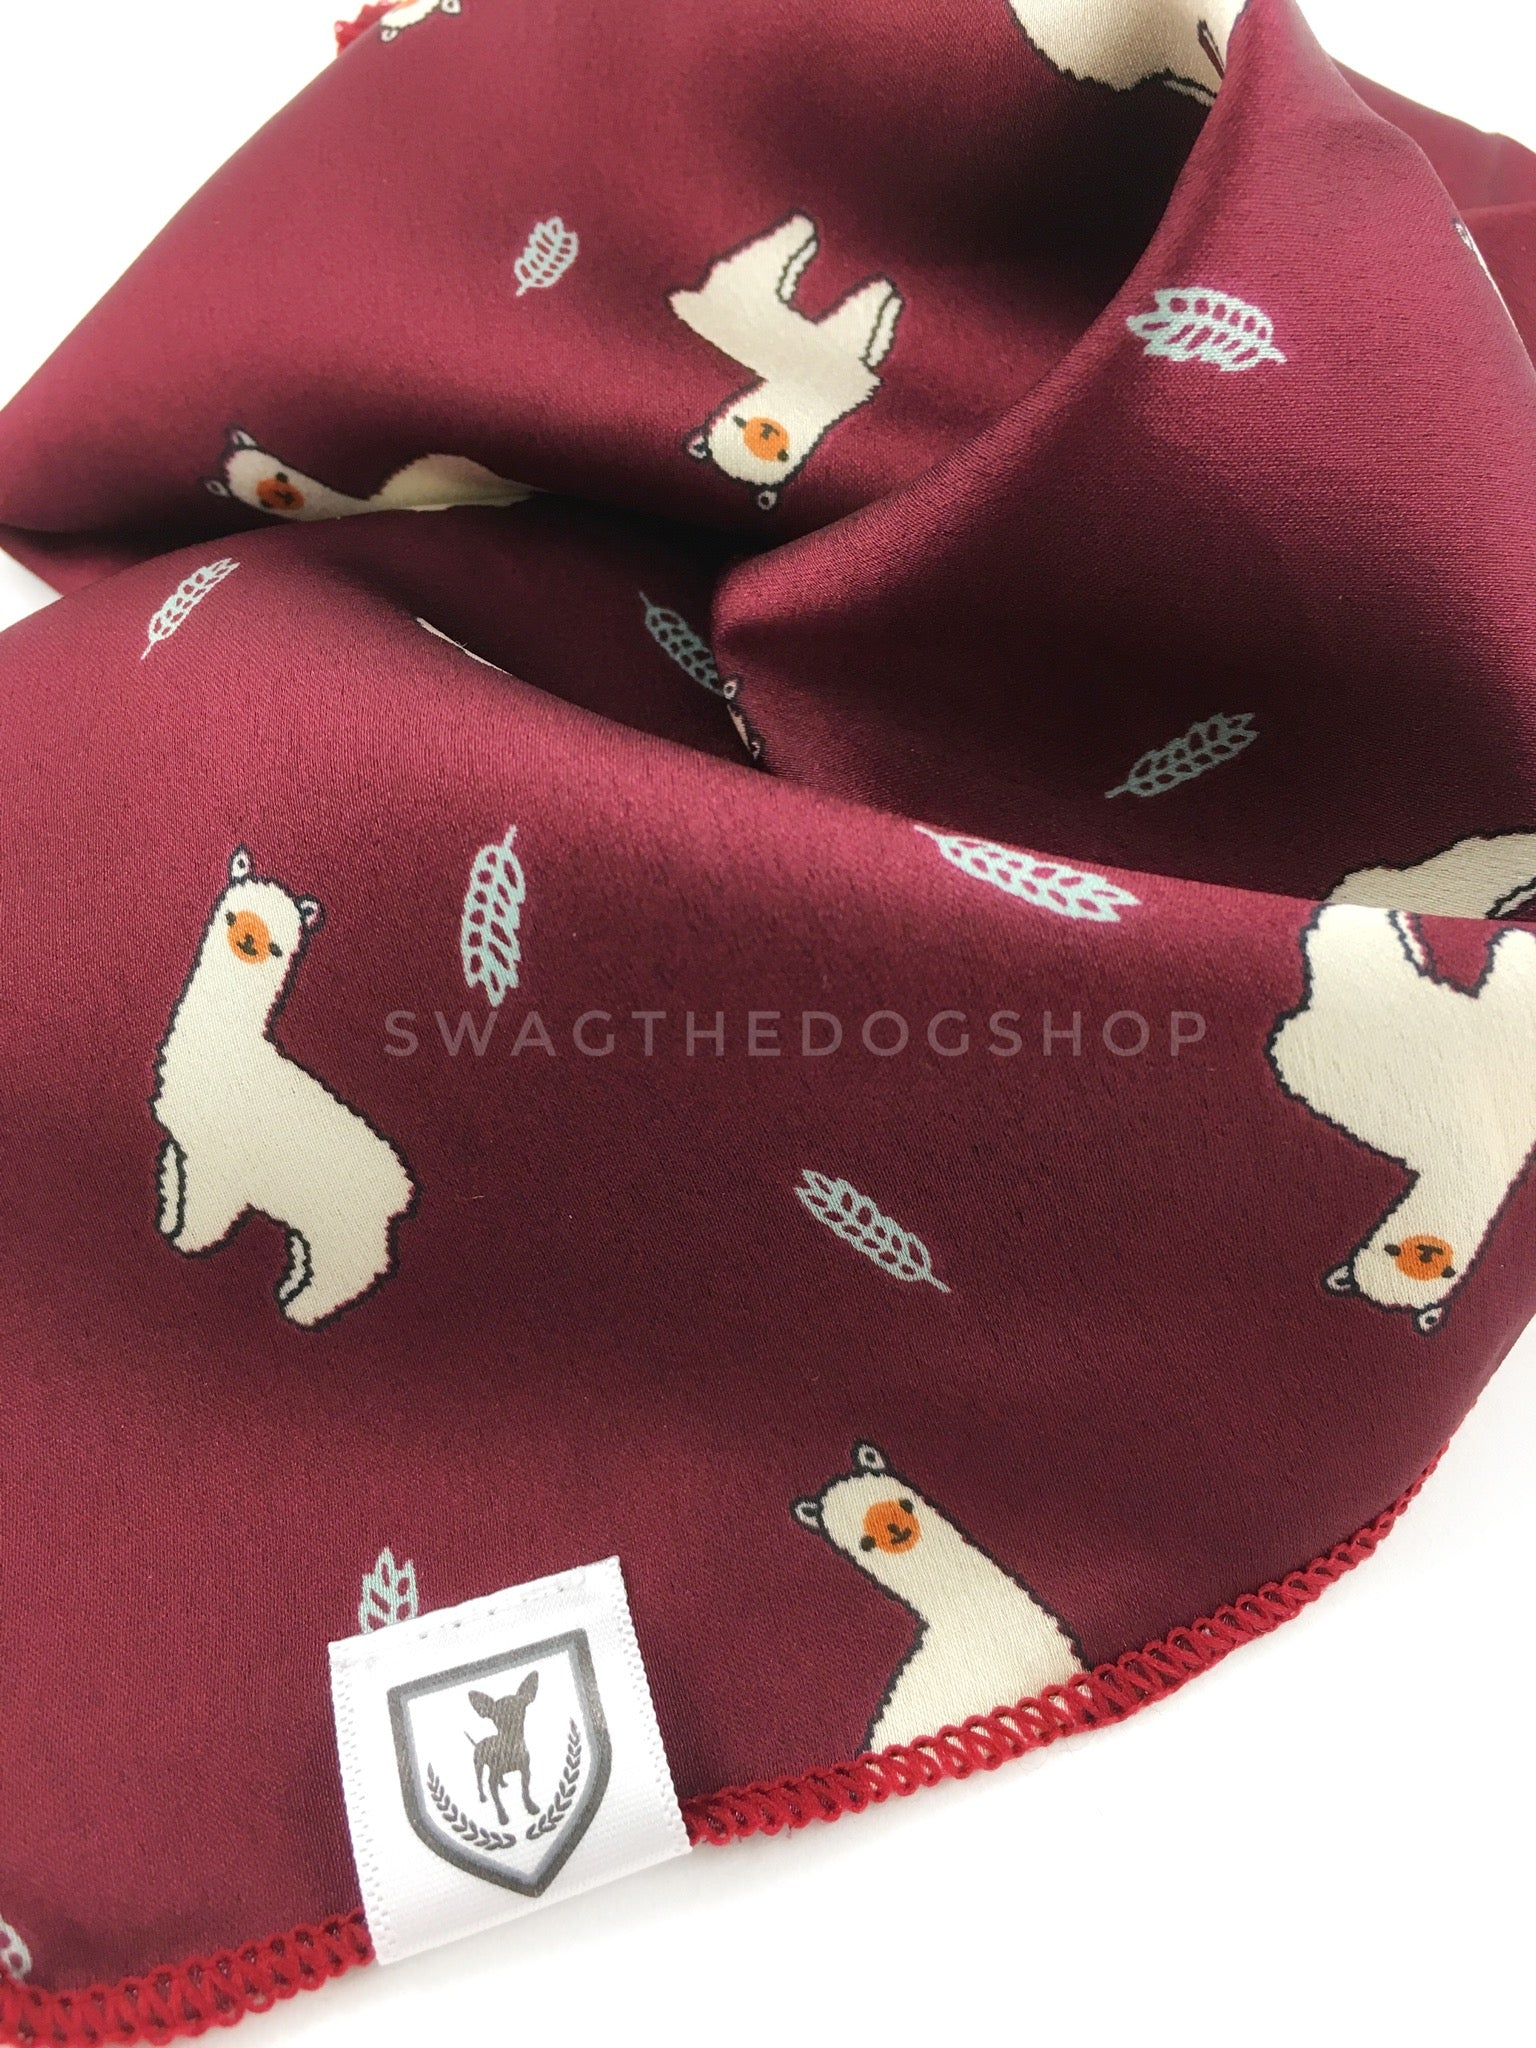 Lorenzo Llama Burgundy Swagdana Scarf - Close-up View of Product. Dog Bandana. Dog Scarf.